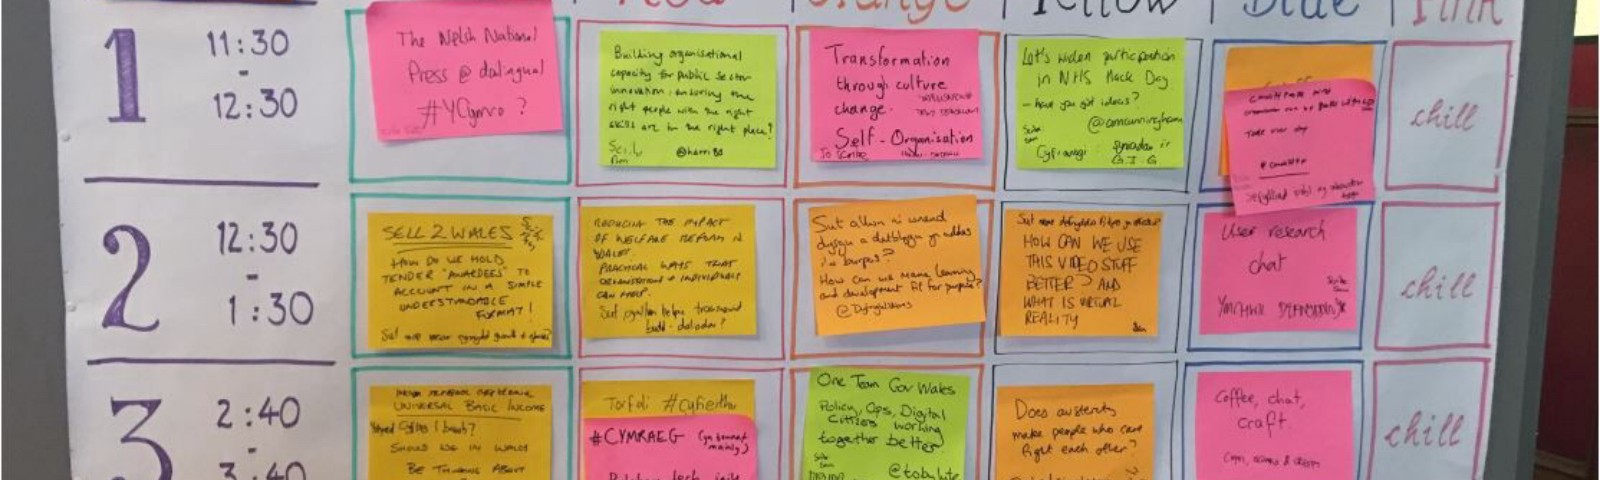 Unconference session board at Govcamp Cymru